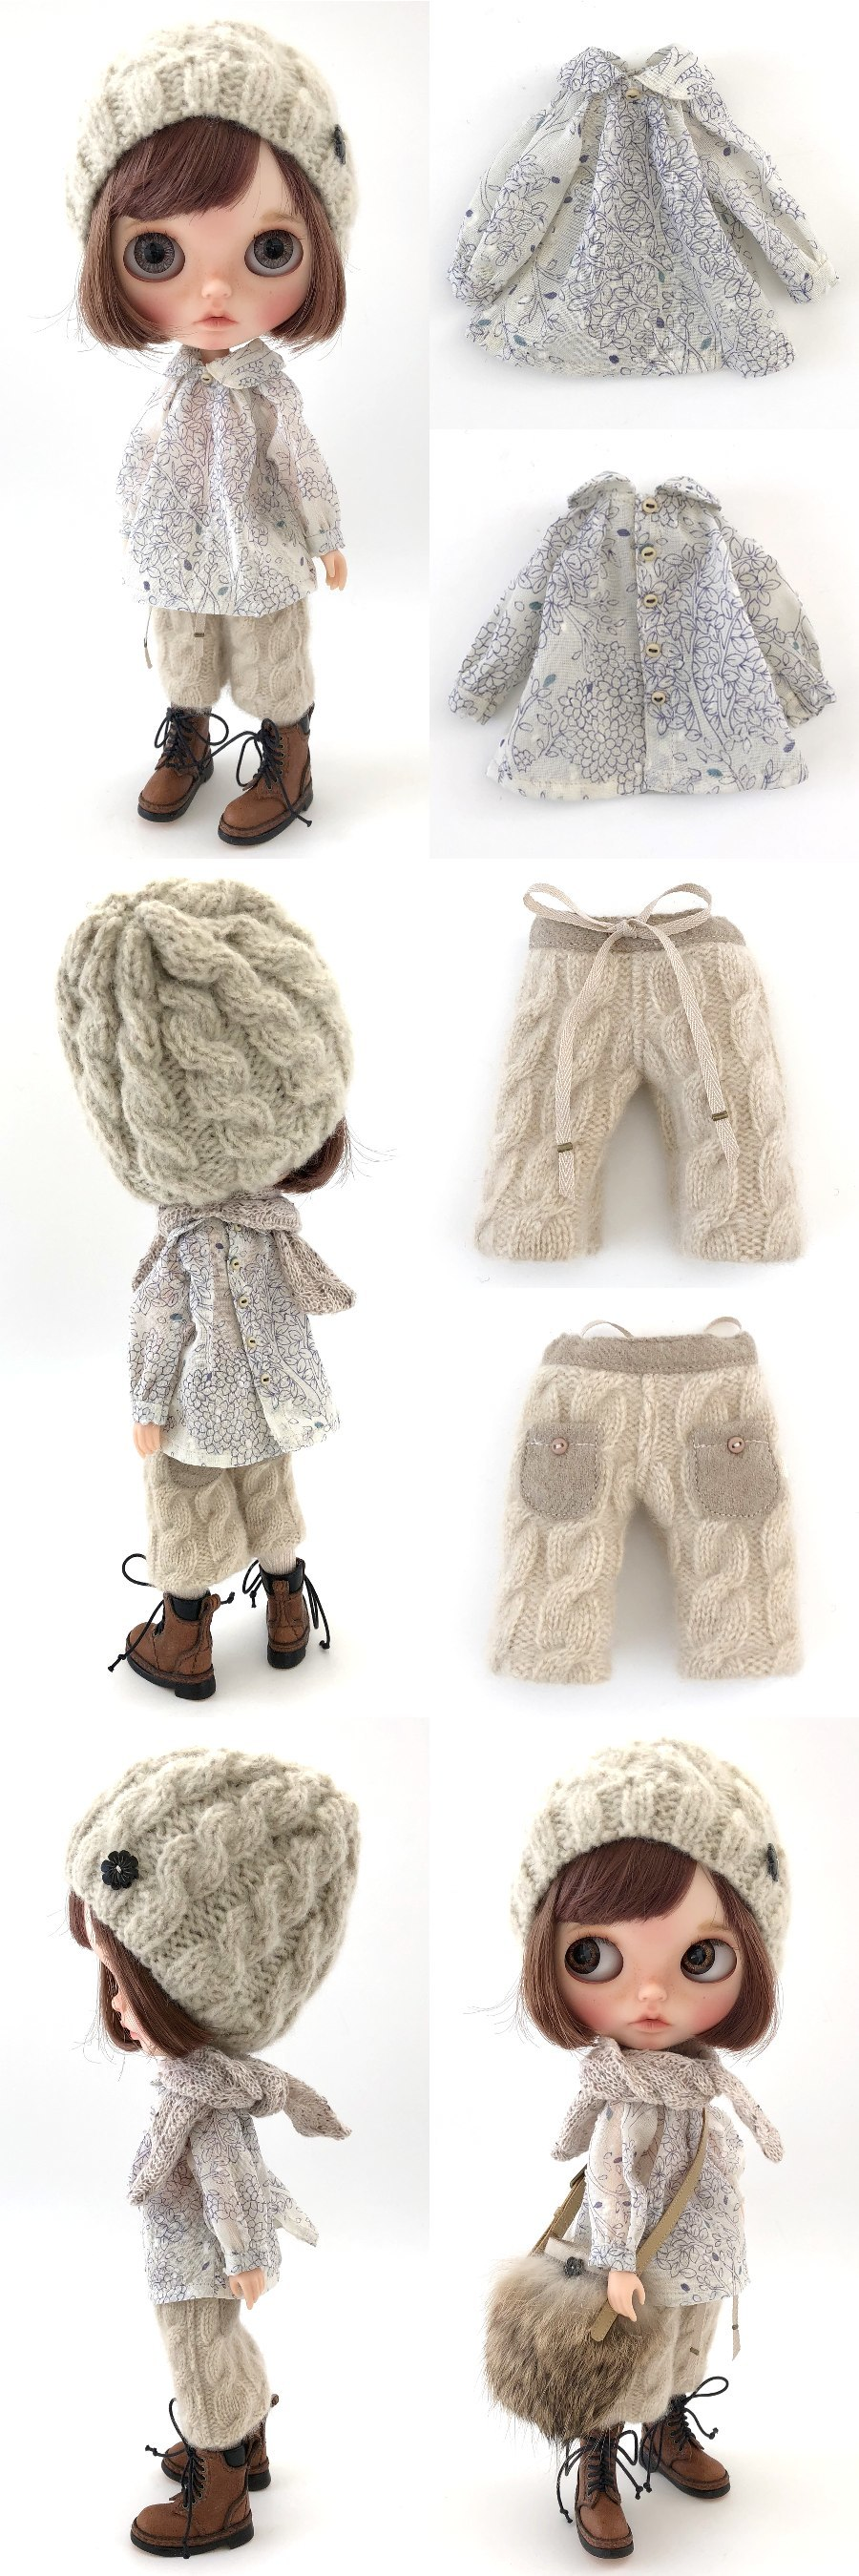 ** Blythe outfit ** Lucalily 581**_d0217189_23022110.jpg